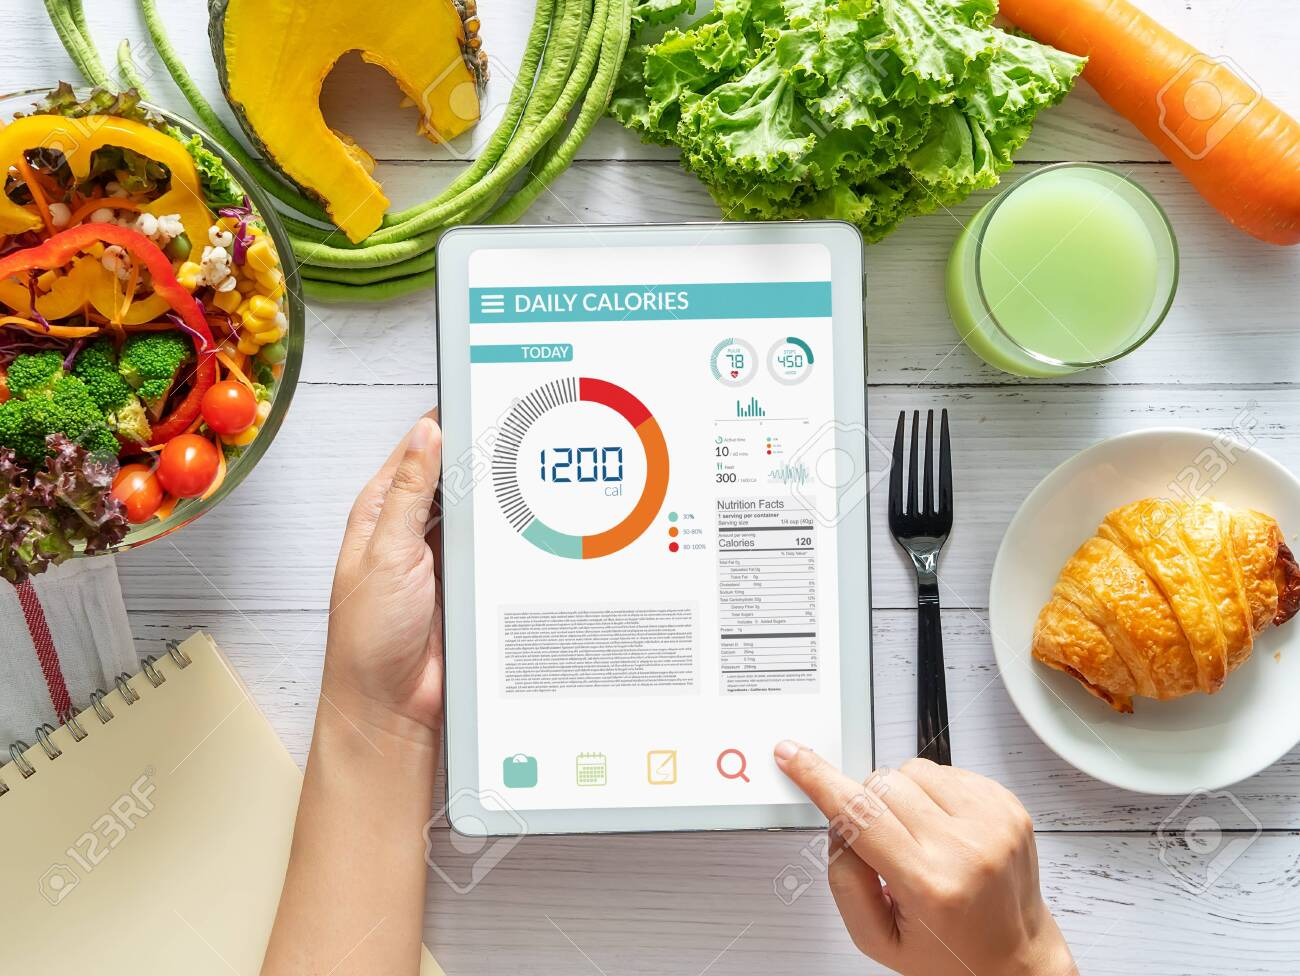 Calories counting , diet , food control and weight loss concept. woman using Calorie counter application on tablet at dining table with fresh vegetable salad - 129973977